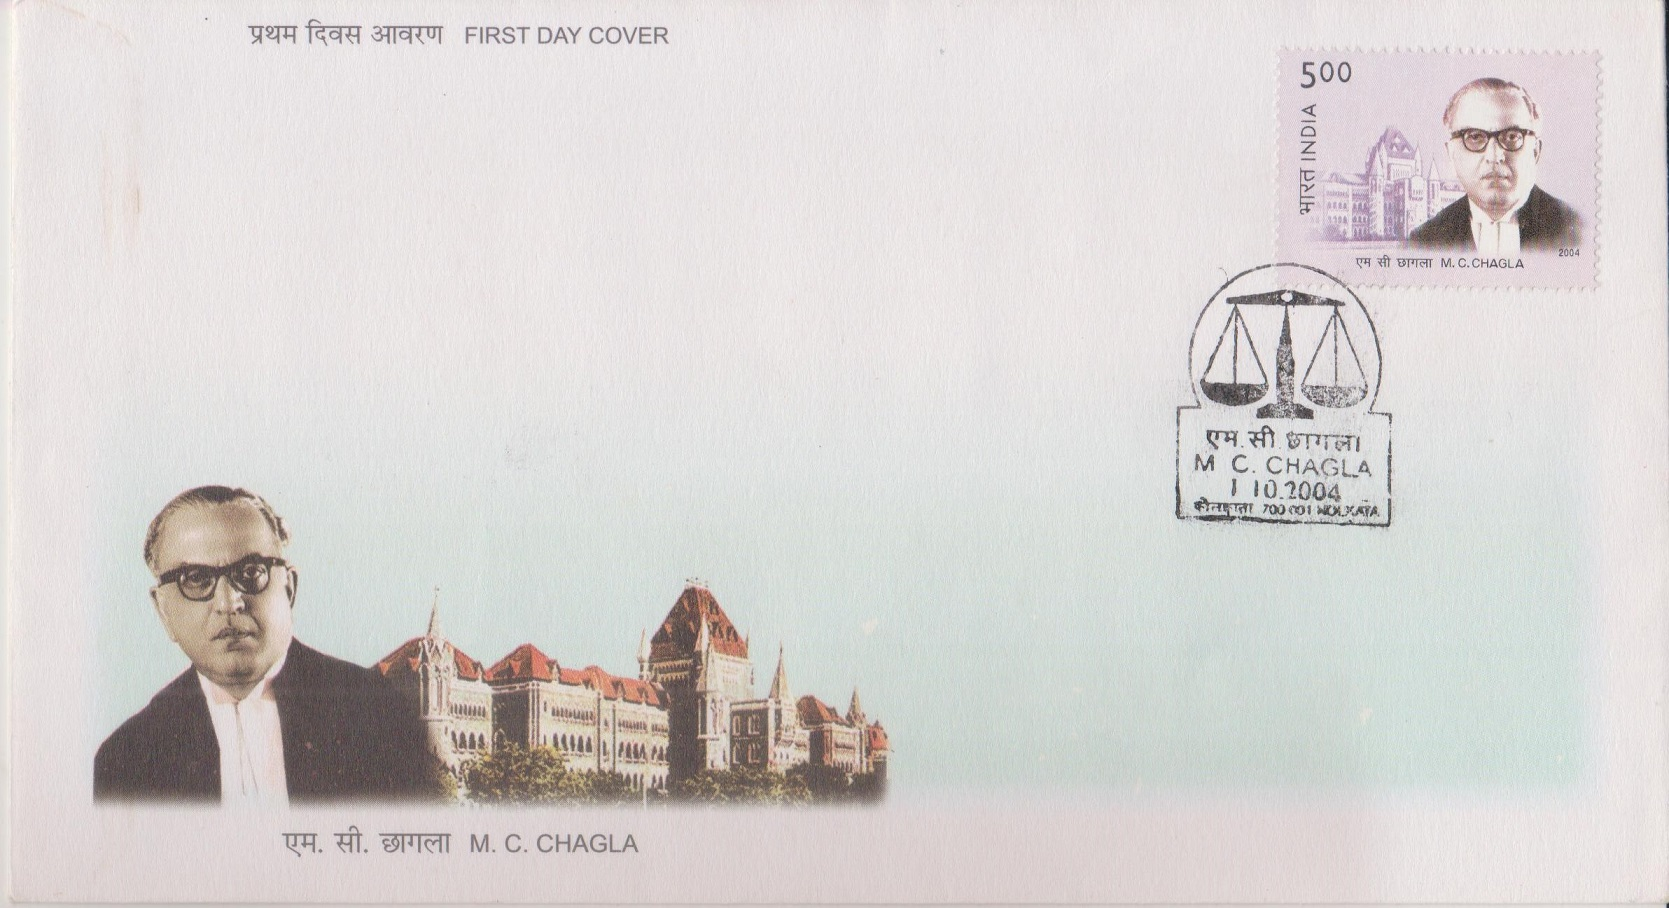 Chief Justice of the Bombay High Court